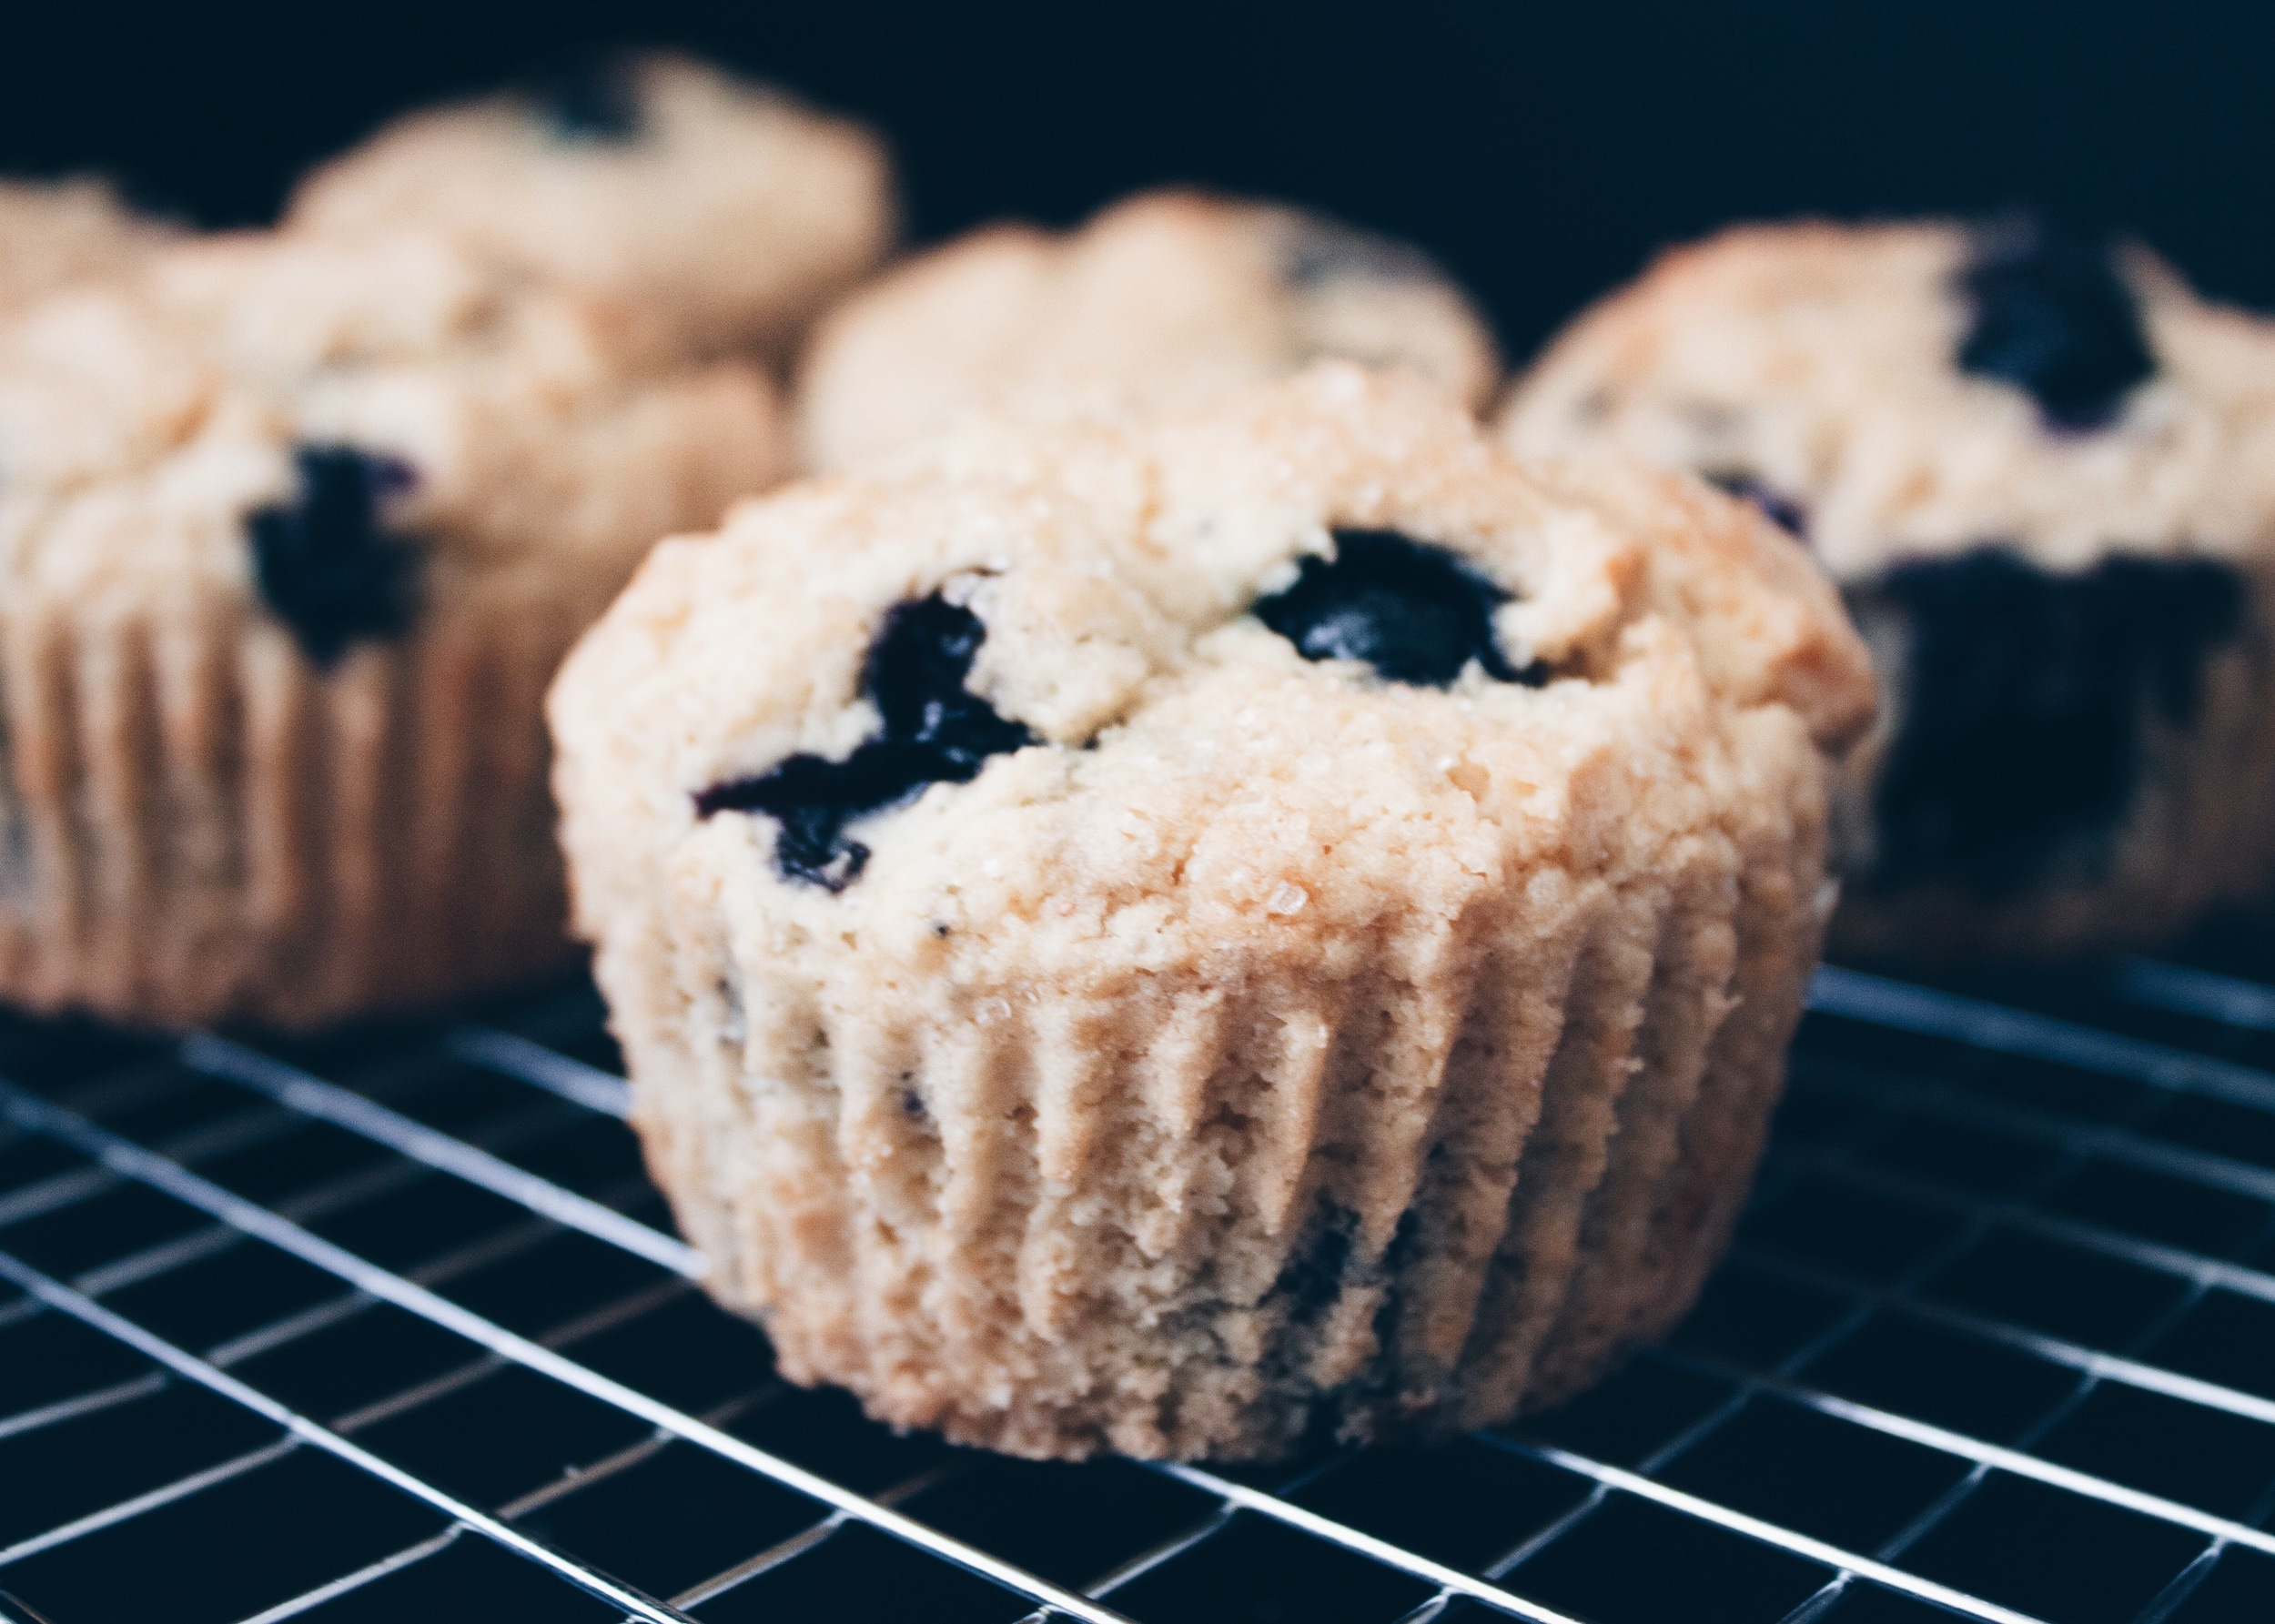 sam-c-perry-Easy-Gluten-Free-Blueberry-Biscuits-1,jpg